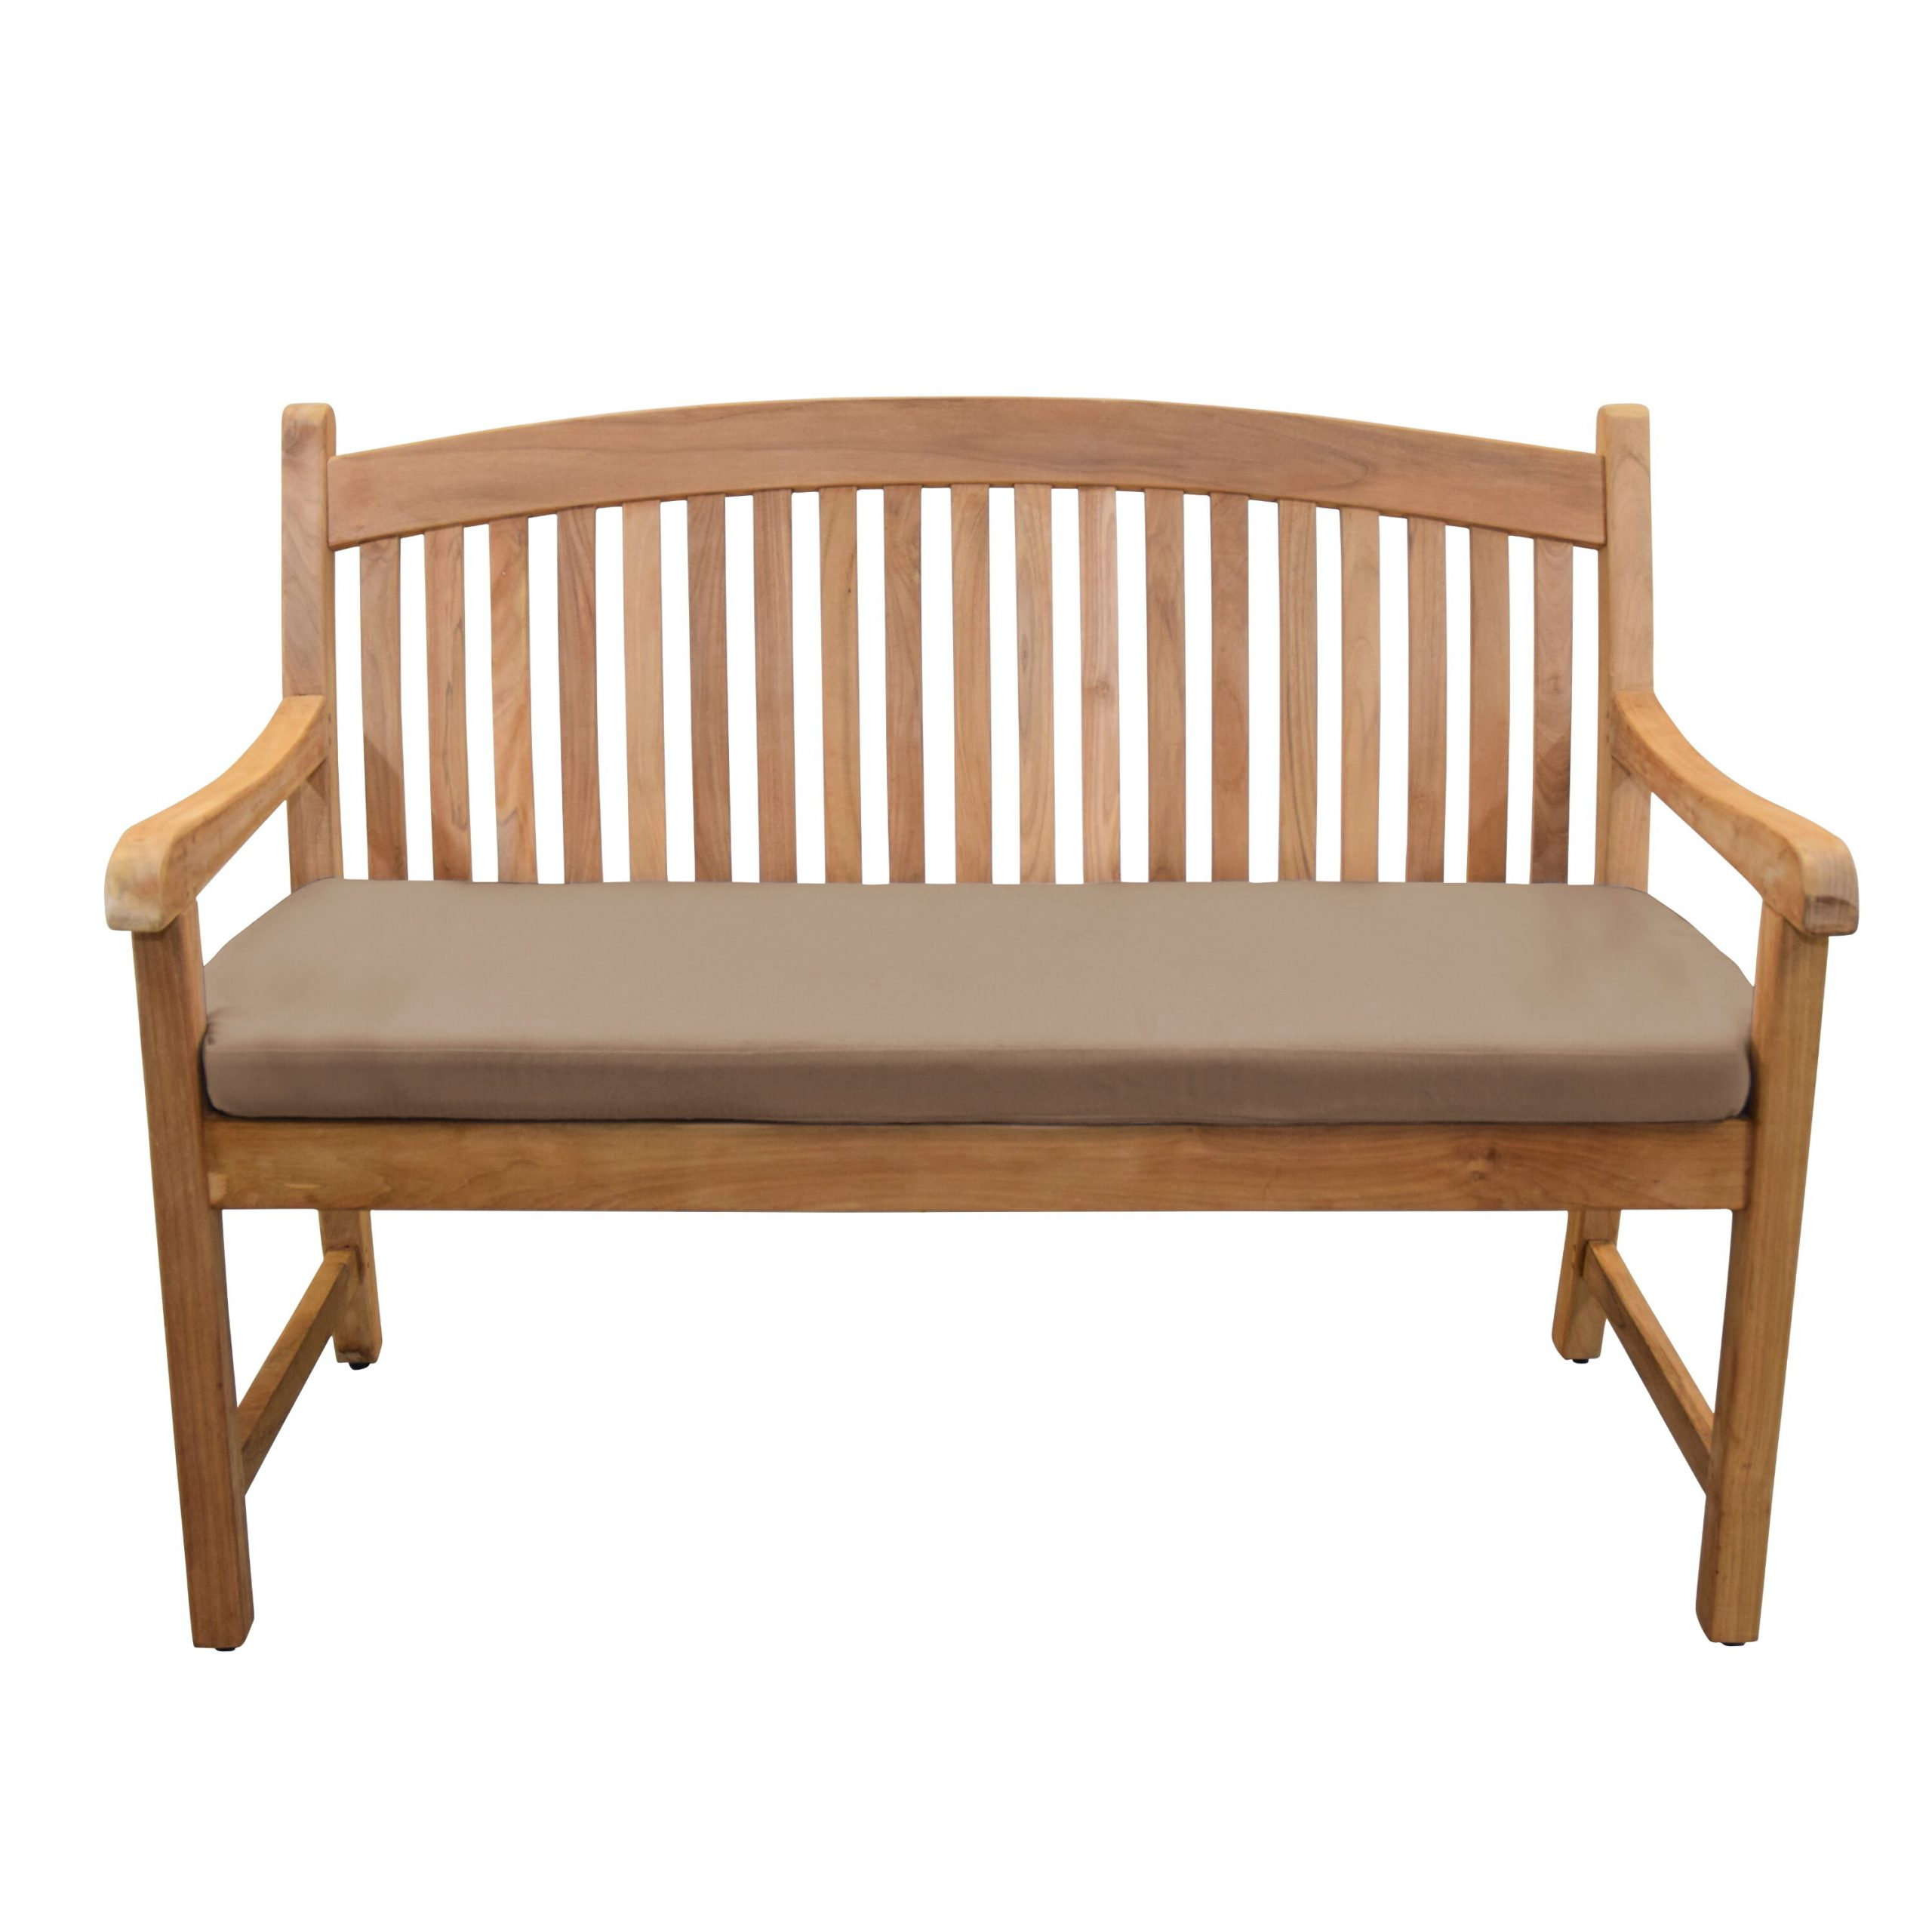 Pulver Teak Garden Bench Regarding Wallie Teak Garden Benches (View 5 of 25)